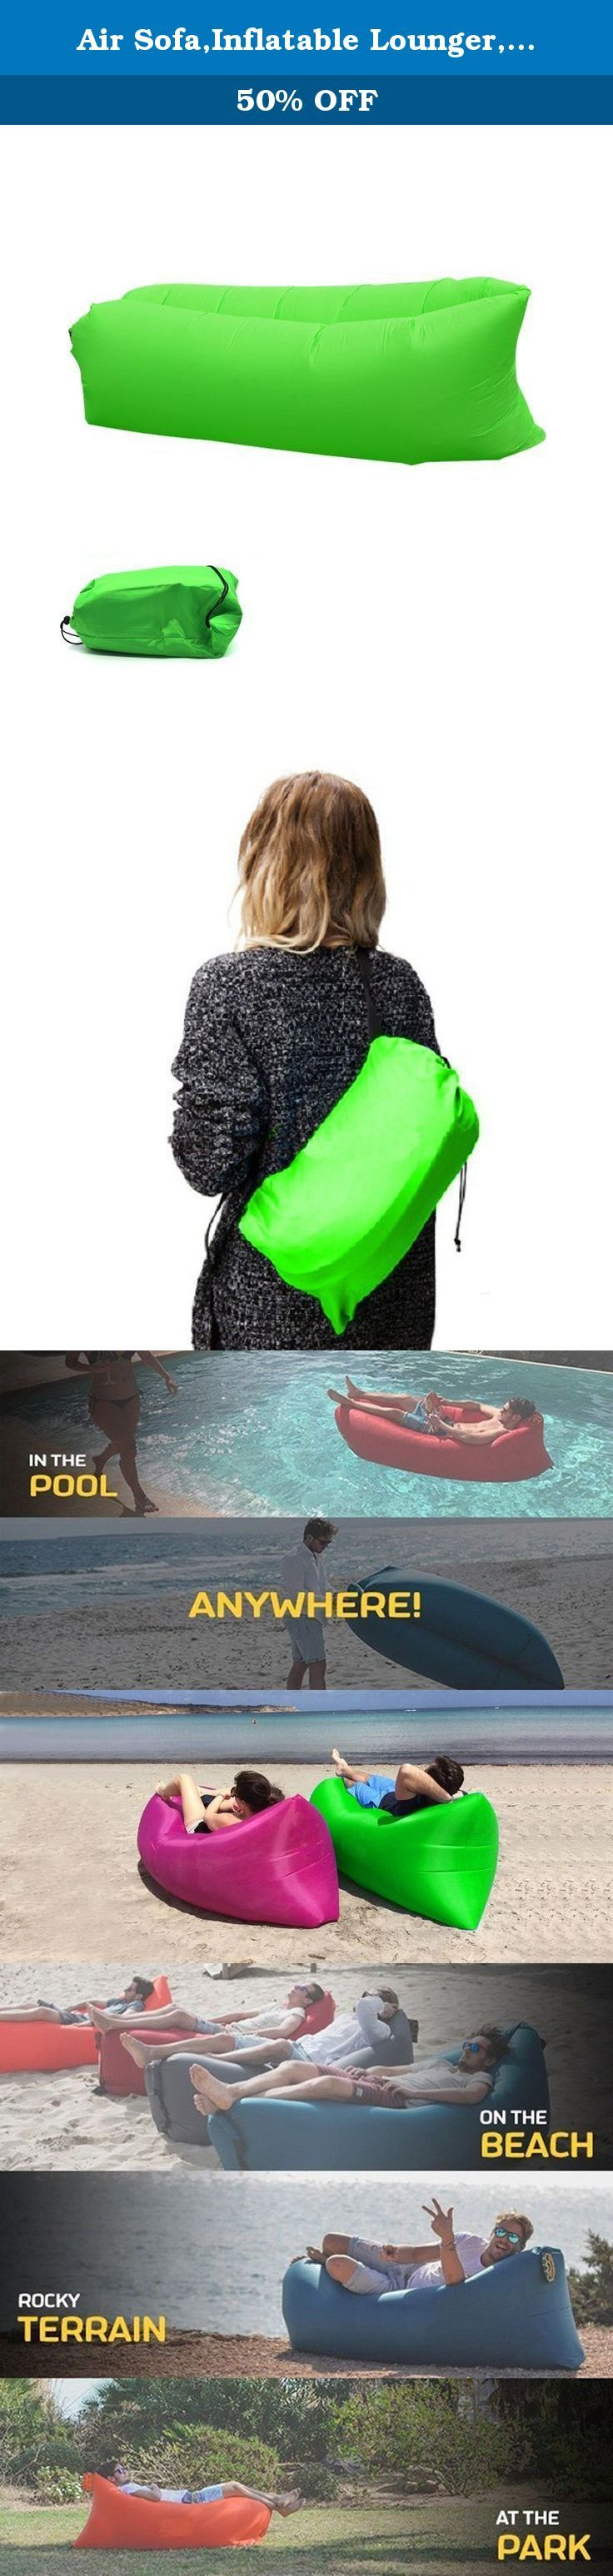 Air Sofa,Inflatable Lounger,Lazy Sofa,Air Bag,Indoor Outdoor Sleeping Bed for Camping Hiking Fishing Swimming Pool(Green). Specifications: Size: 96 x 27.6inches Weight: 0.9kg (1.98lbs ) Max Load: 250kg Read Below Before Using If it is windy outside congratulations to you, you can fast inflatable. If there is no wind outside it may be a little difficult, you may need to run 10 meters; and if you are tring to inflate it indoor, we will suggest a fan orsomething like that! 80% Air is enough...